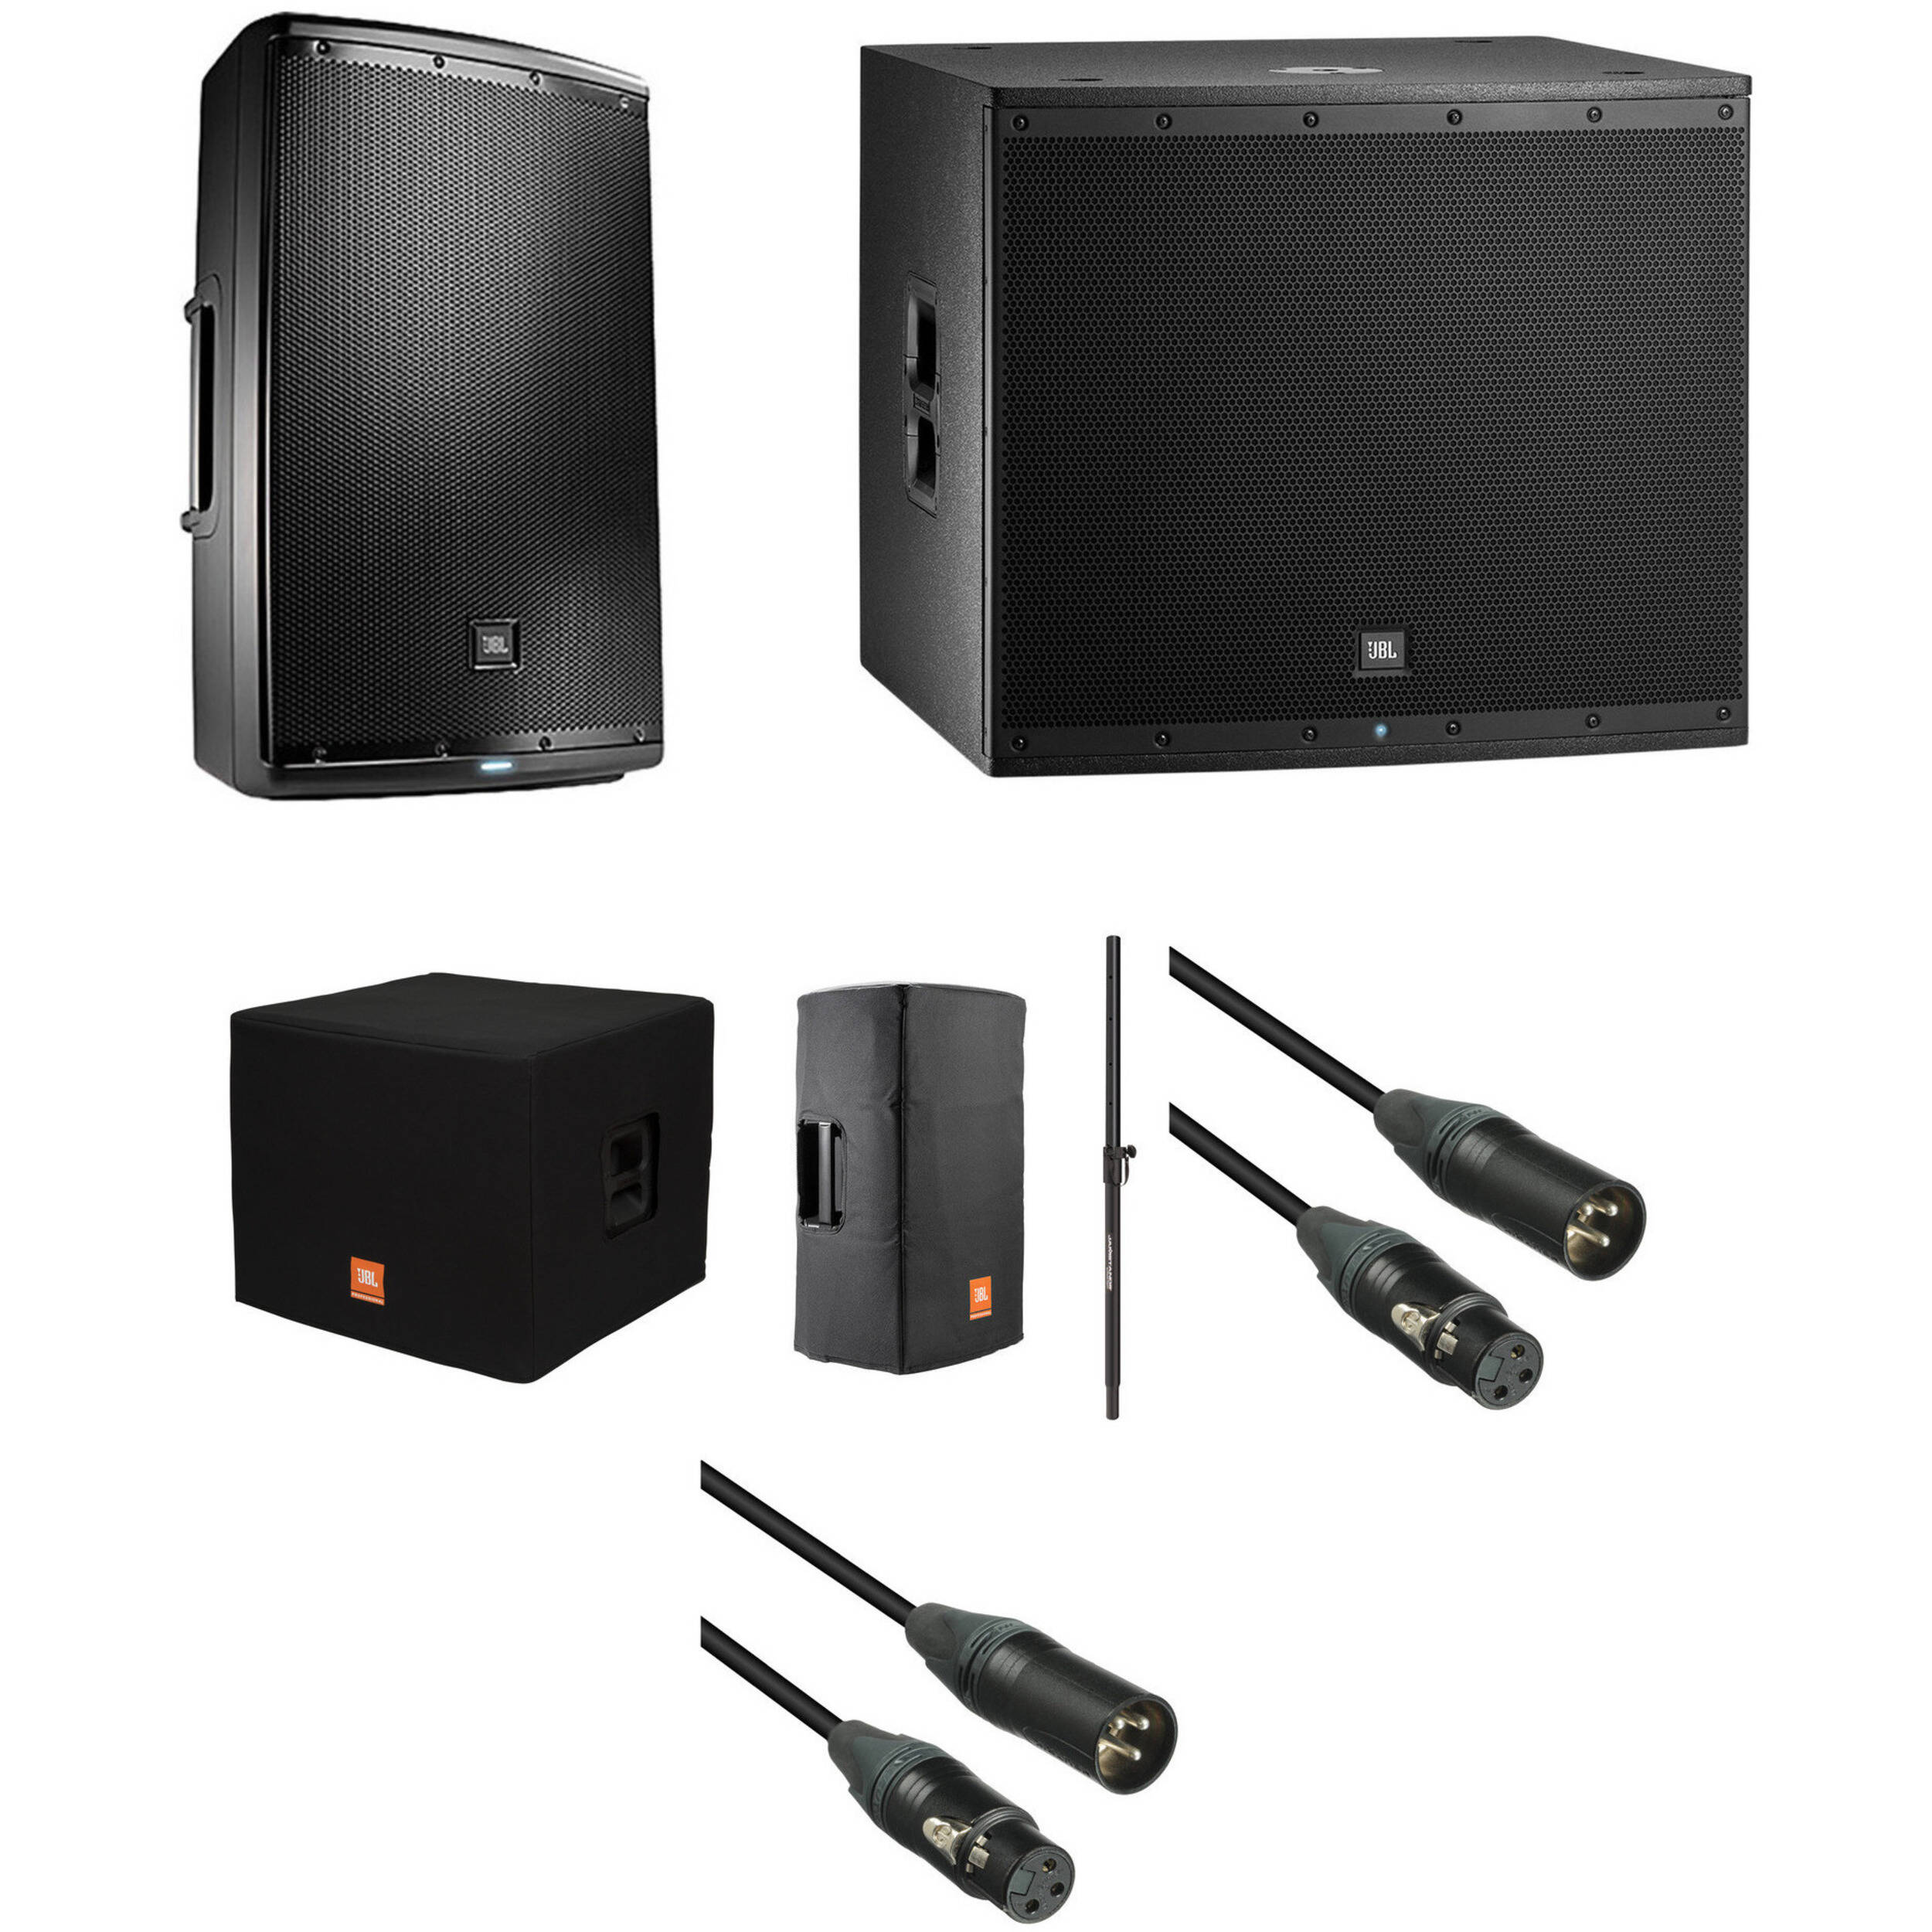 Jbl Eon Powered Speaker And Subwoofer Kit With Covers Way Crossover Work Also Speakers 3 Diagrams Pole Cables